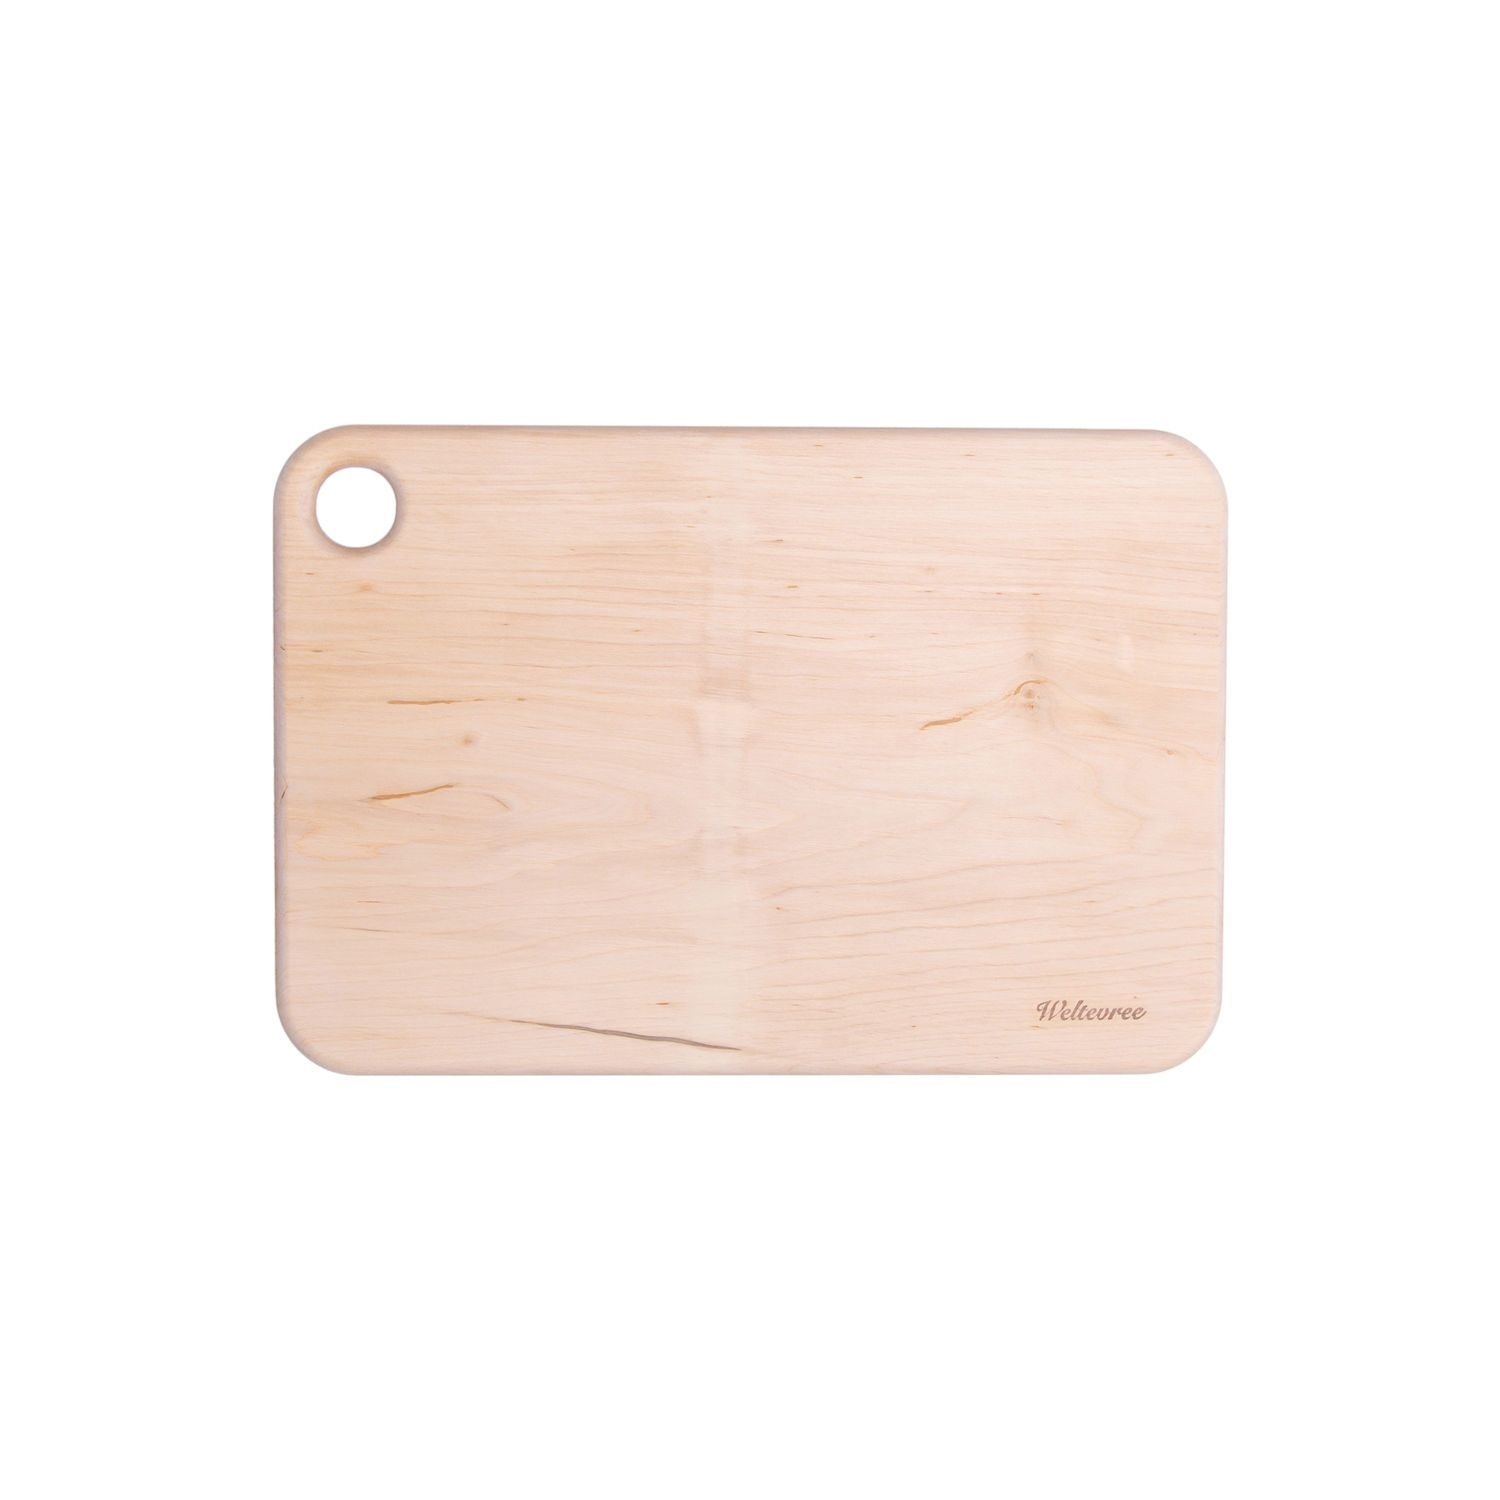 Cutting Board Servierbrett